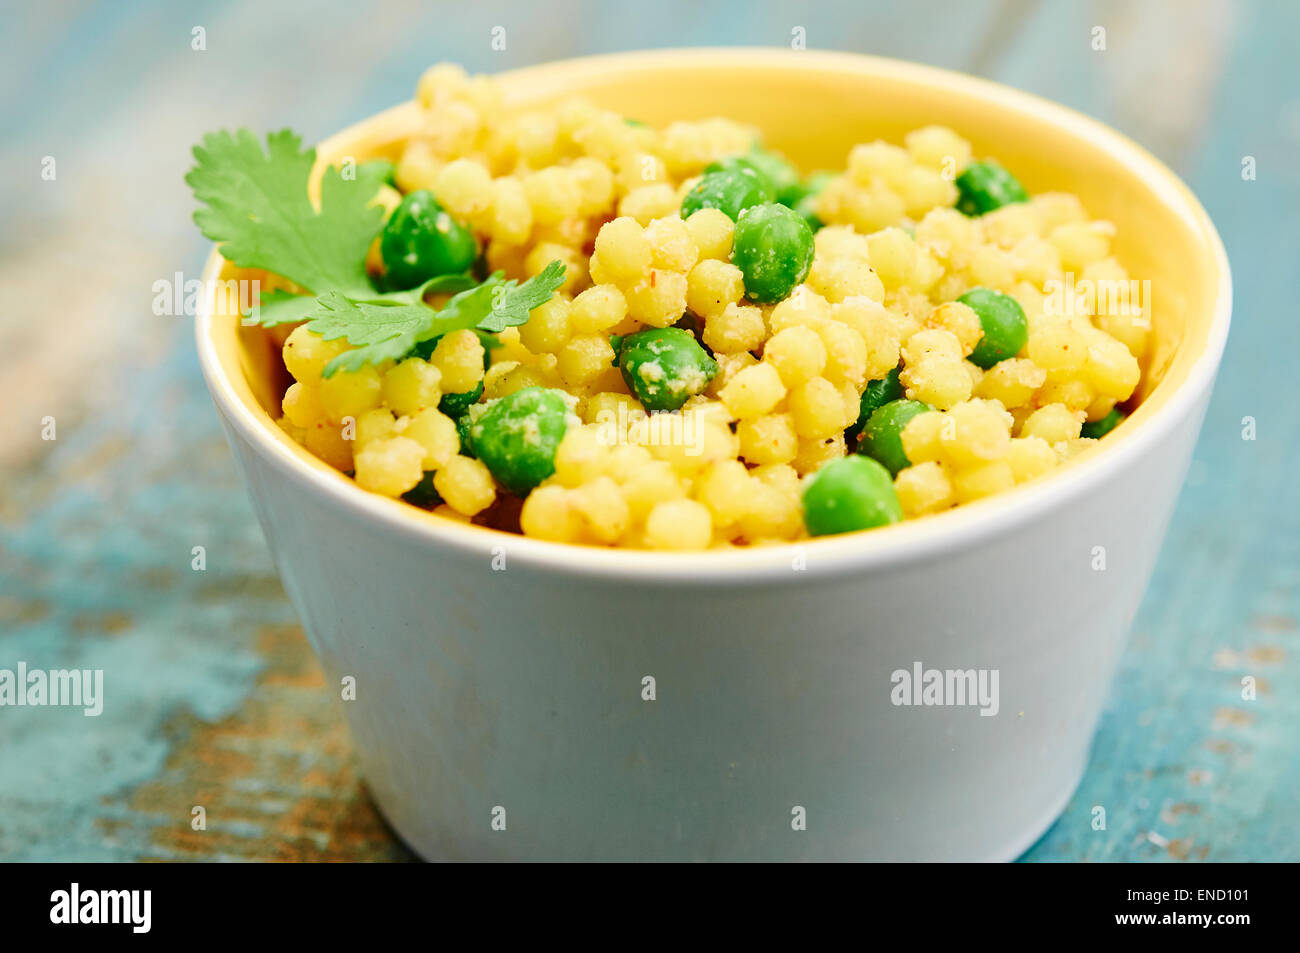 Dairy-free cheesy style salad with large round couscous and peas. - Stock Image